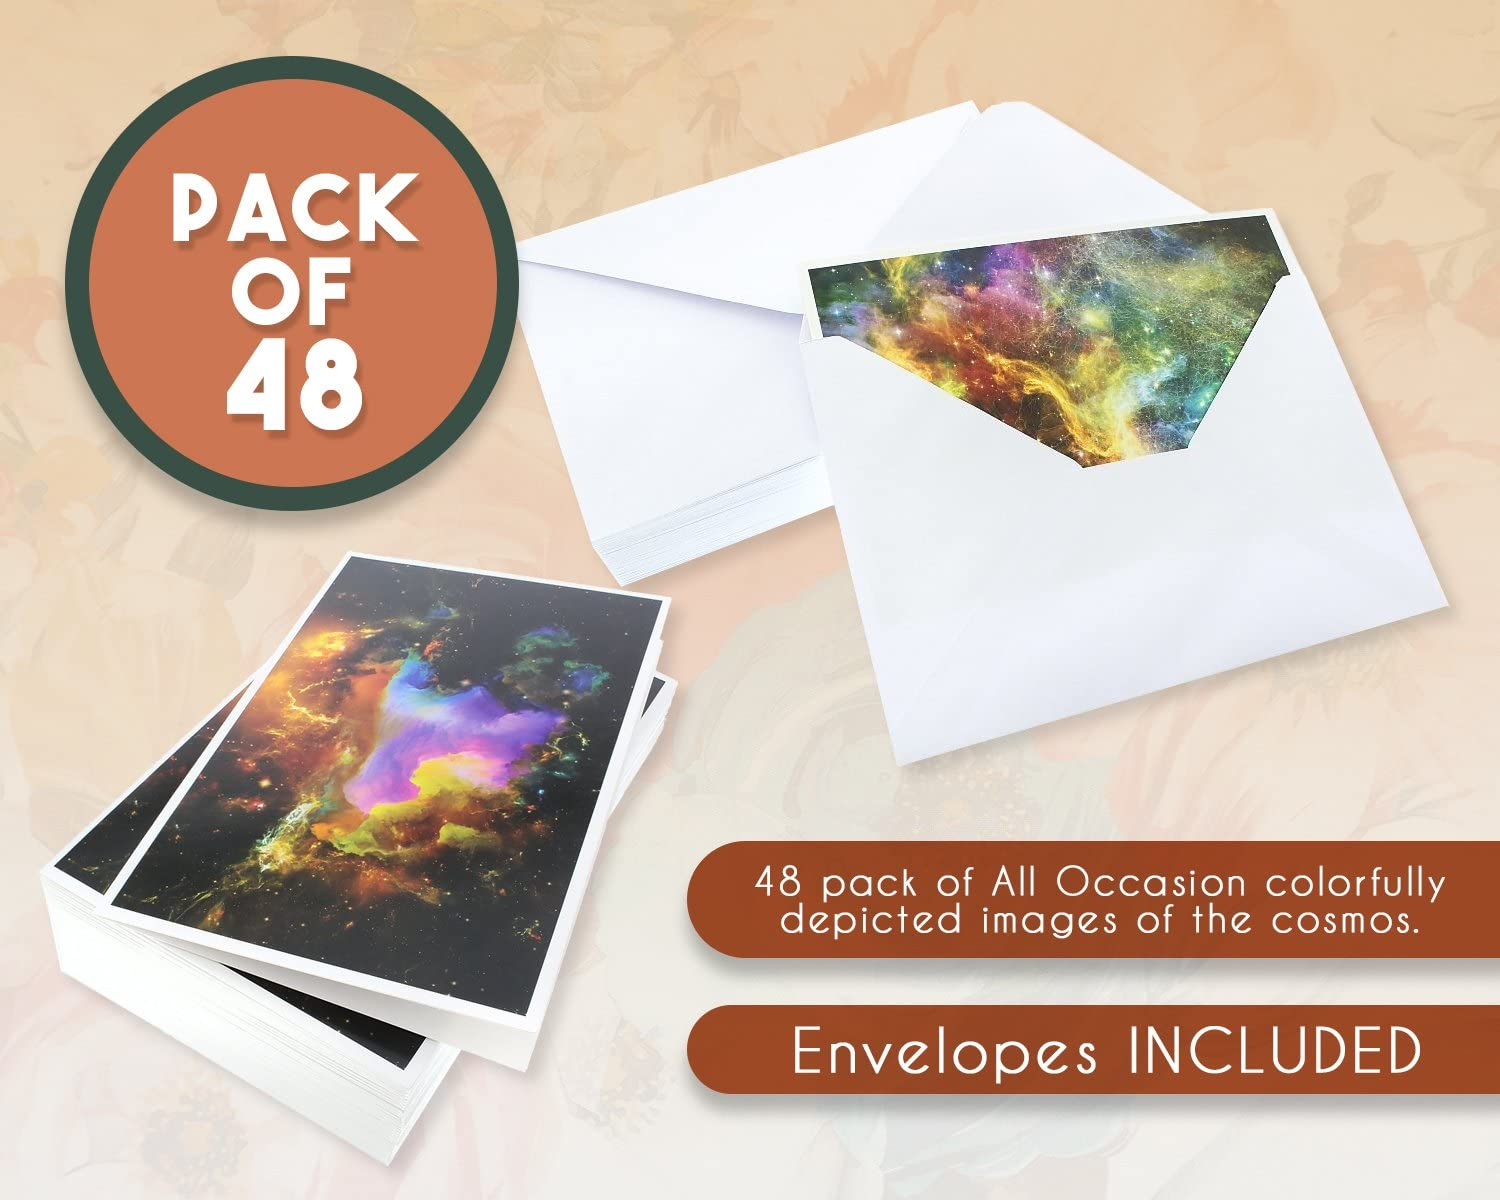 4 x 6 Inches Assorted Blank Note Cards Bulk Box Set Cosmic Designs 48 Pack All Occasion Greeting Cards Envelopes Included